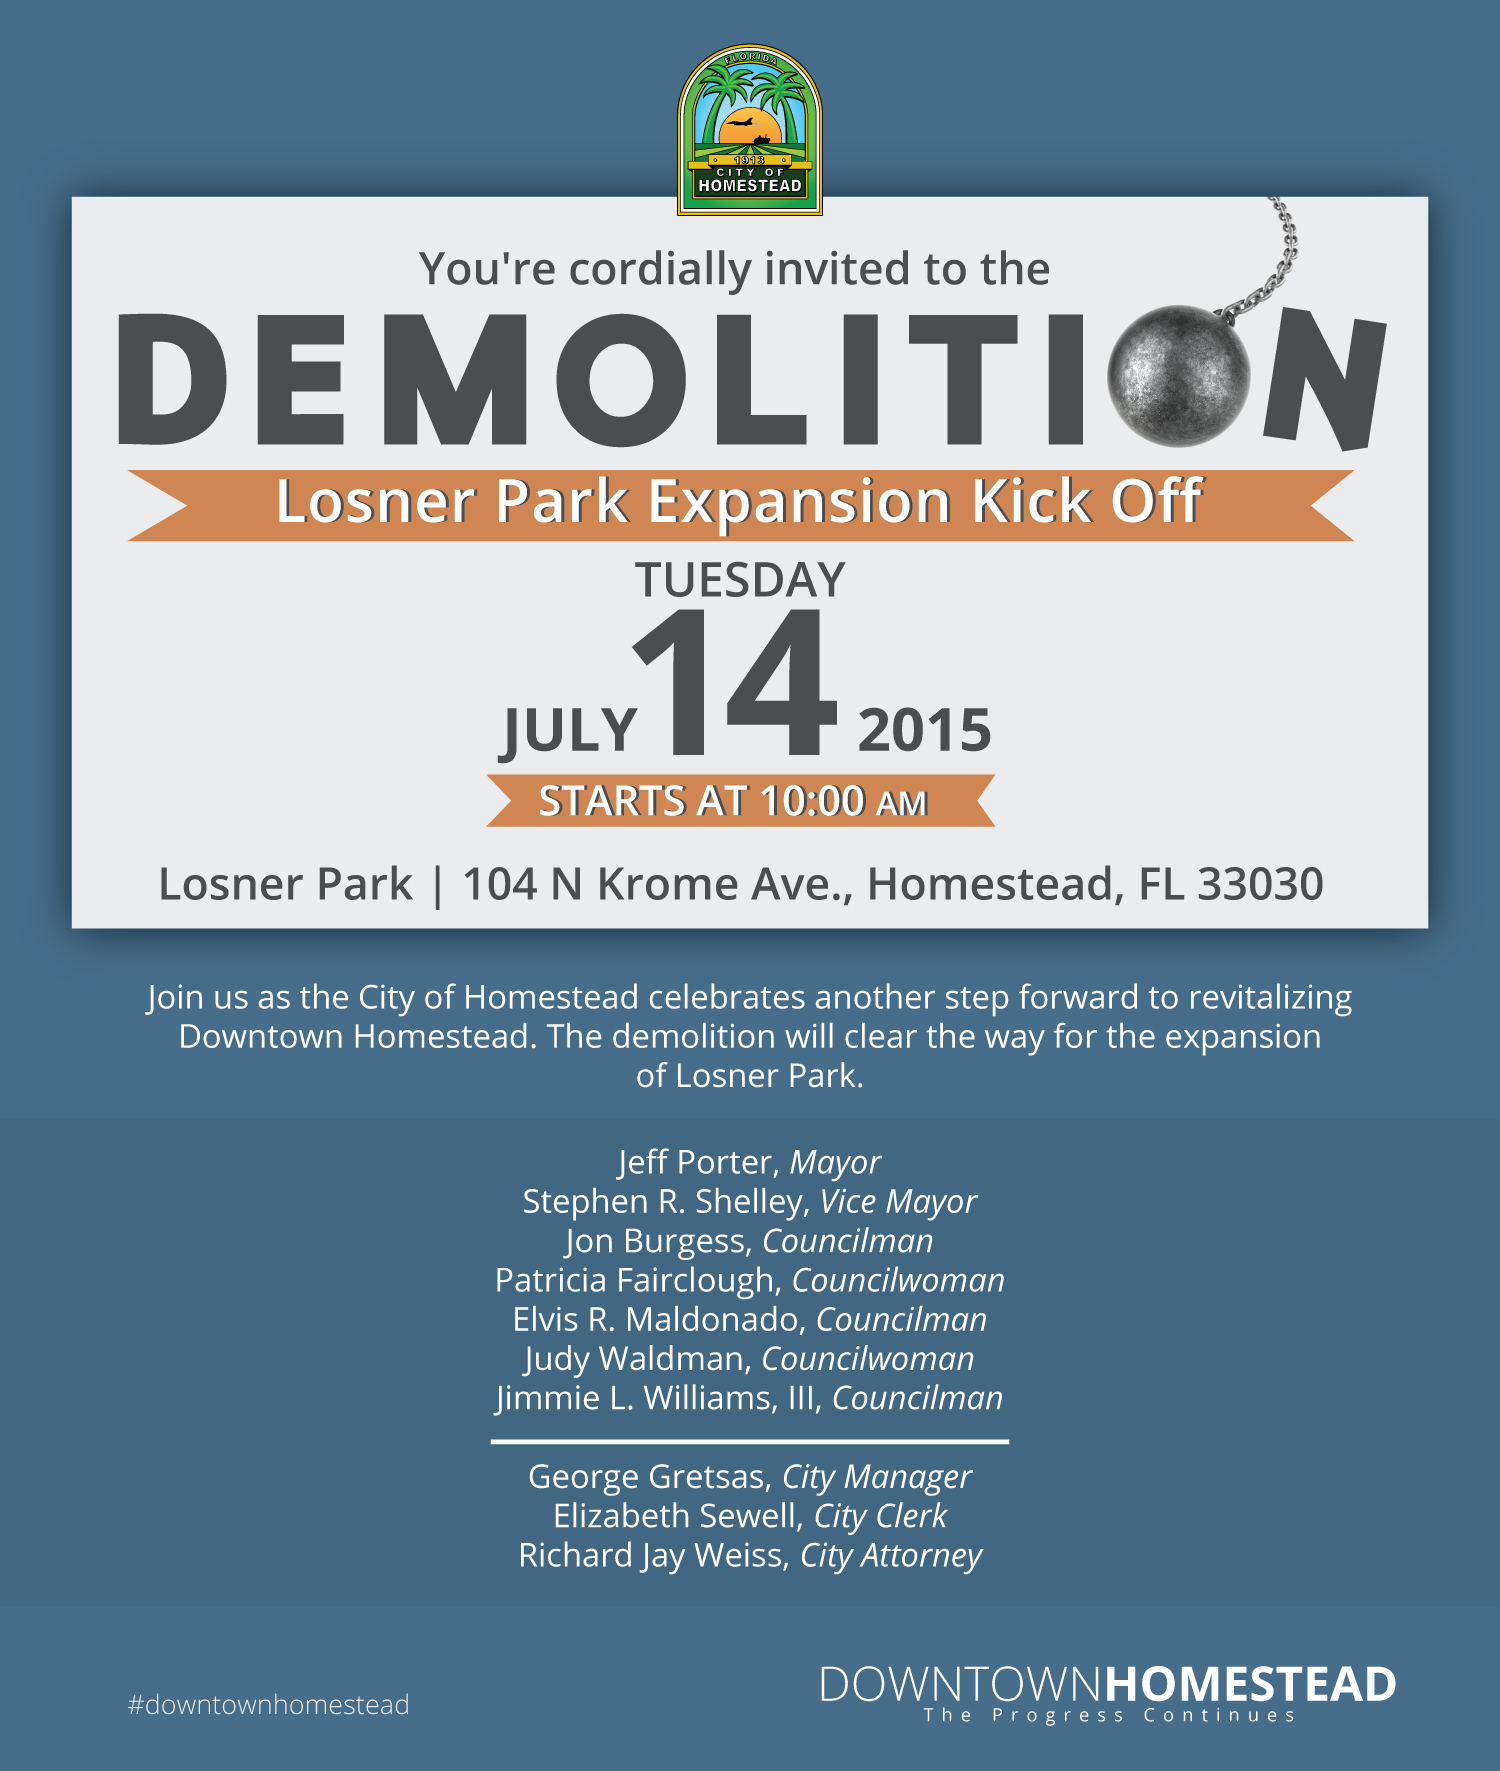 Demolition Kick Off Ceremony